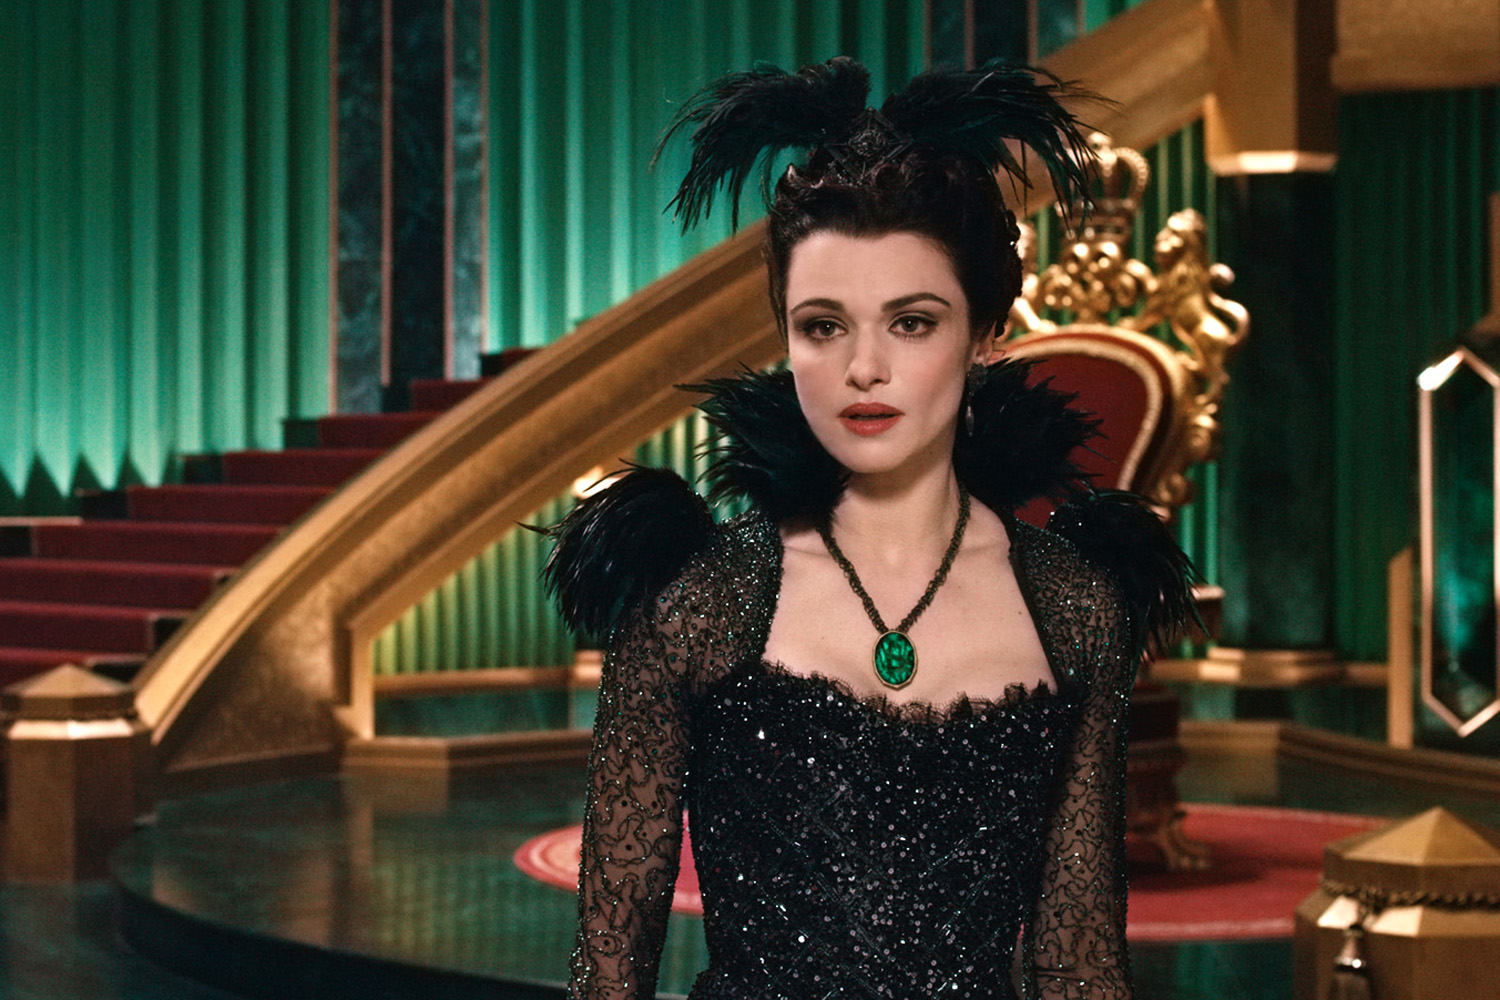 Film Guru Lad - Film Reviews: 200th Review!! Oz the Great ... Oz The Great And Powerful Cast Oz